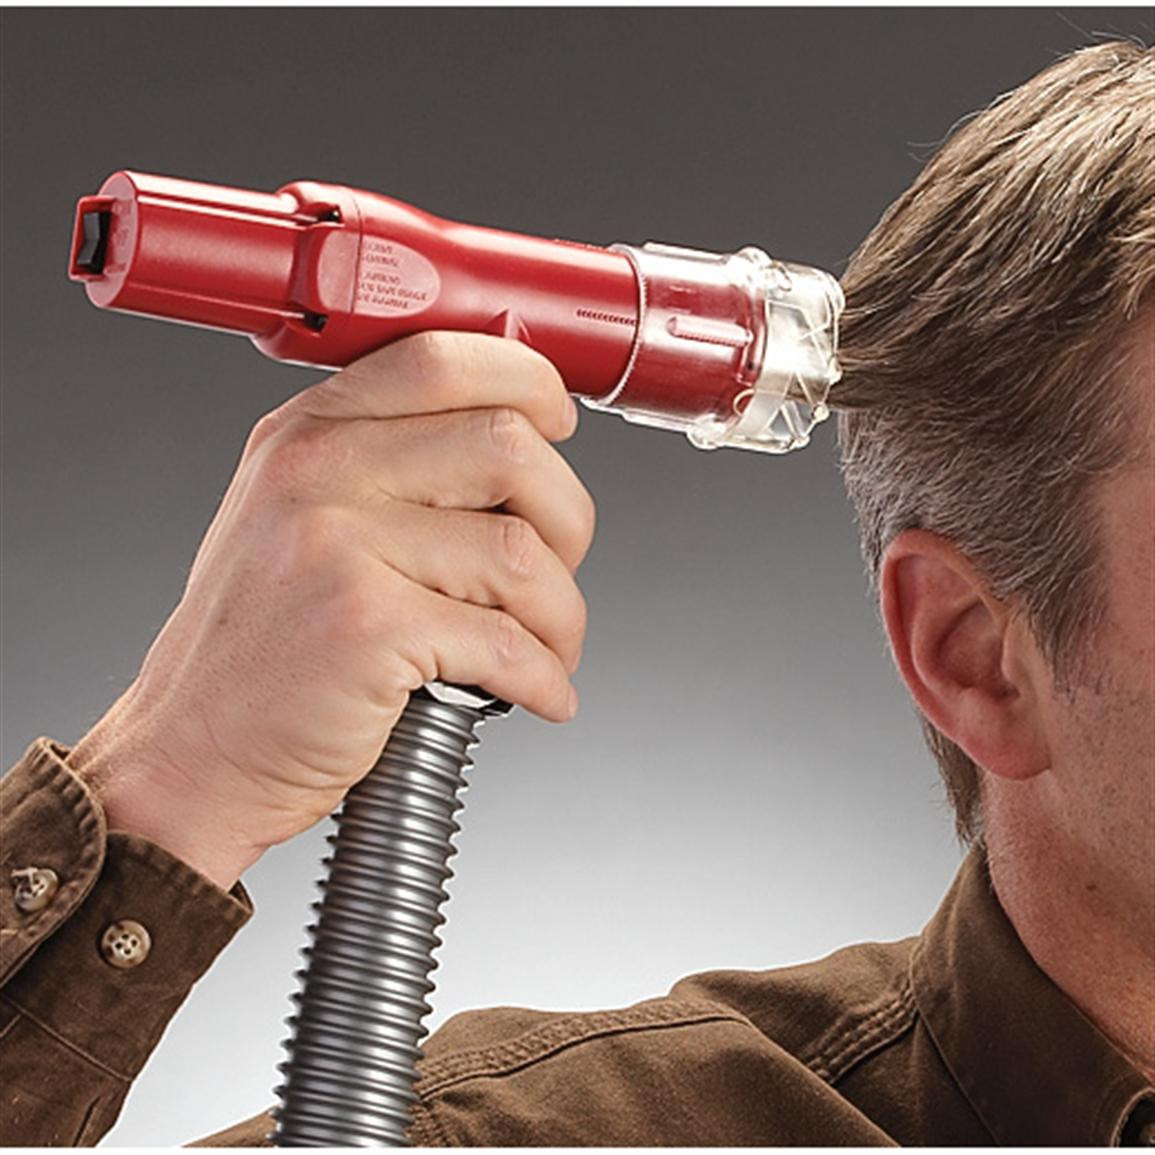 RoboCutA Haircutting iSystemi 174018 Beauty Grooming at